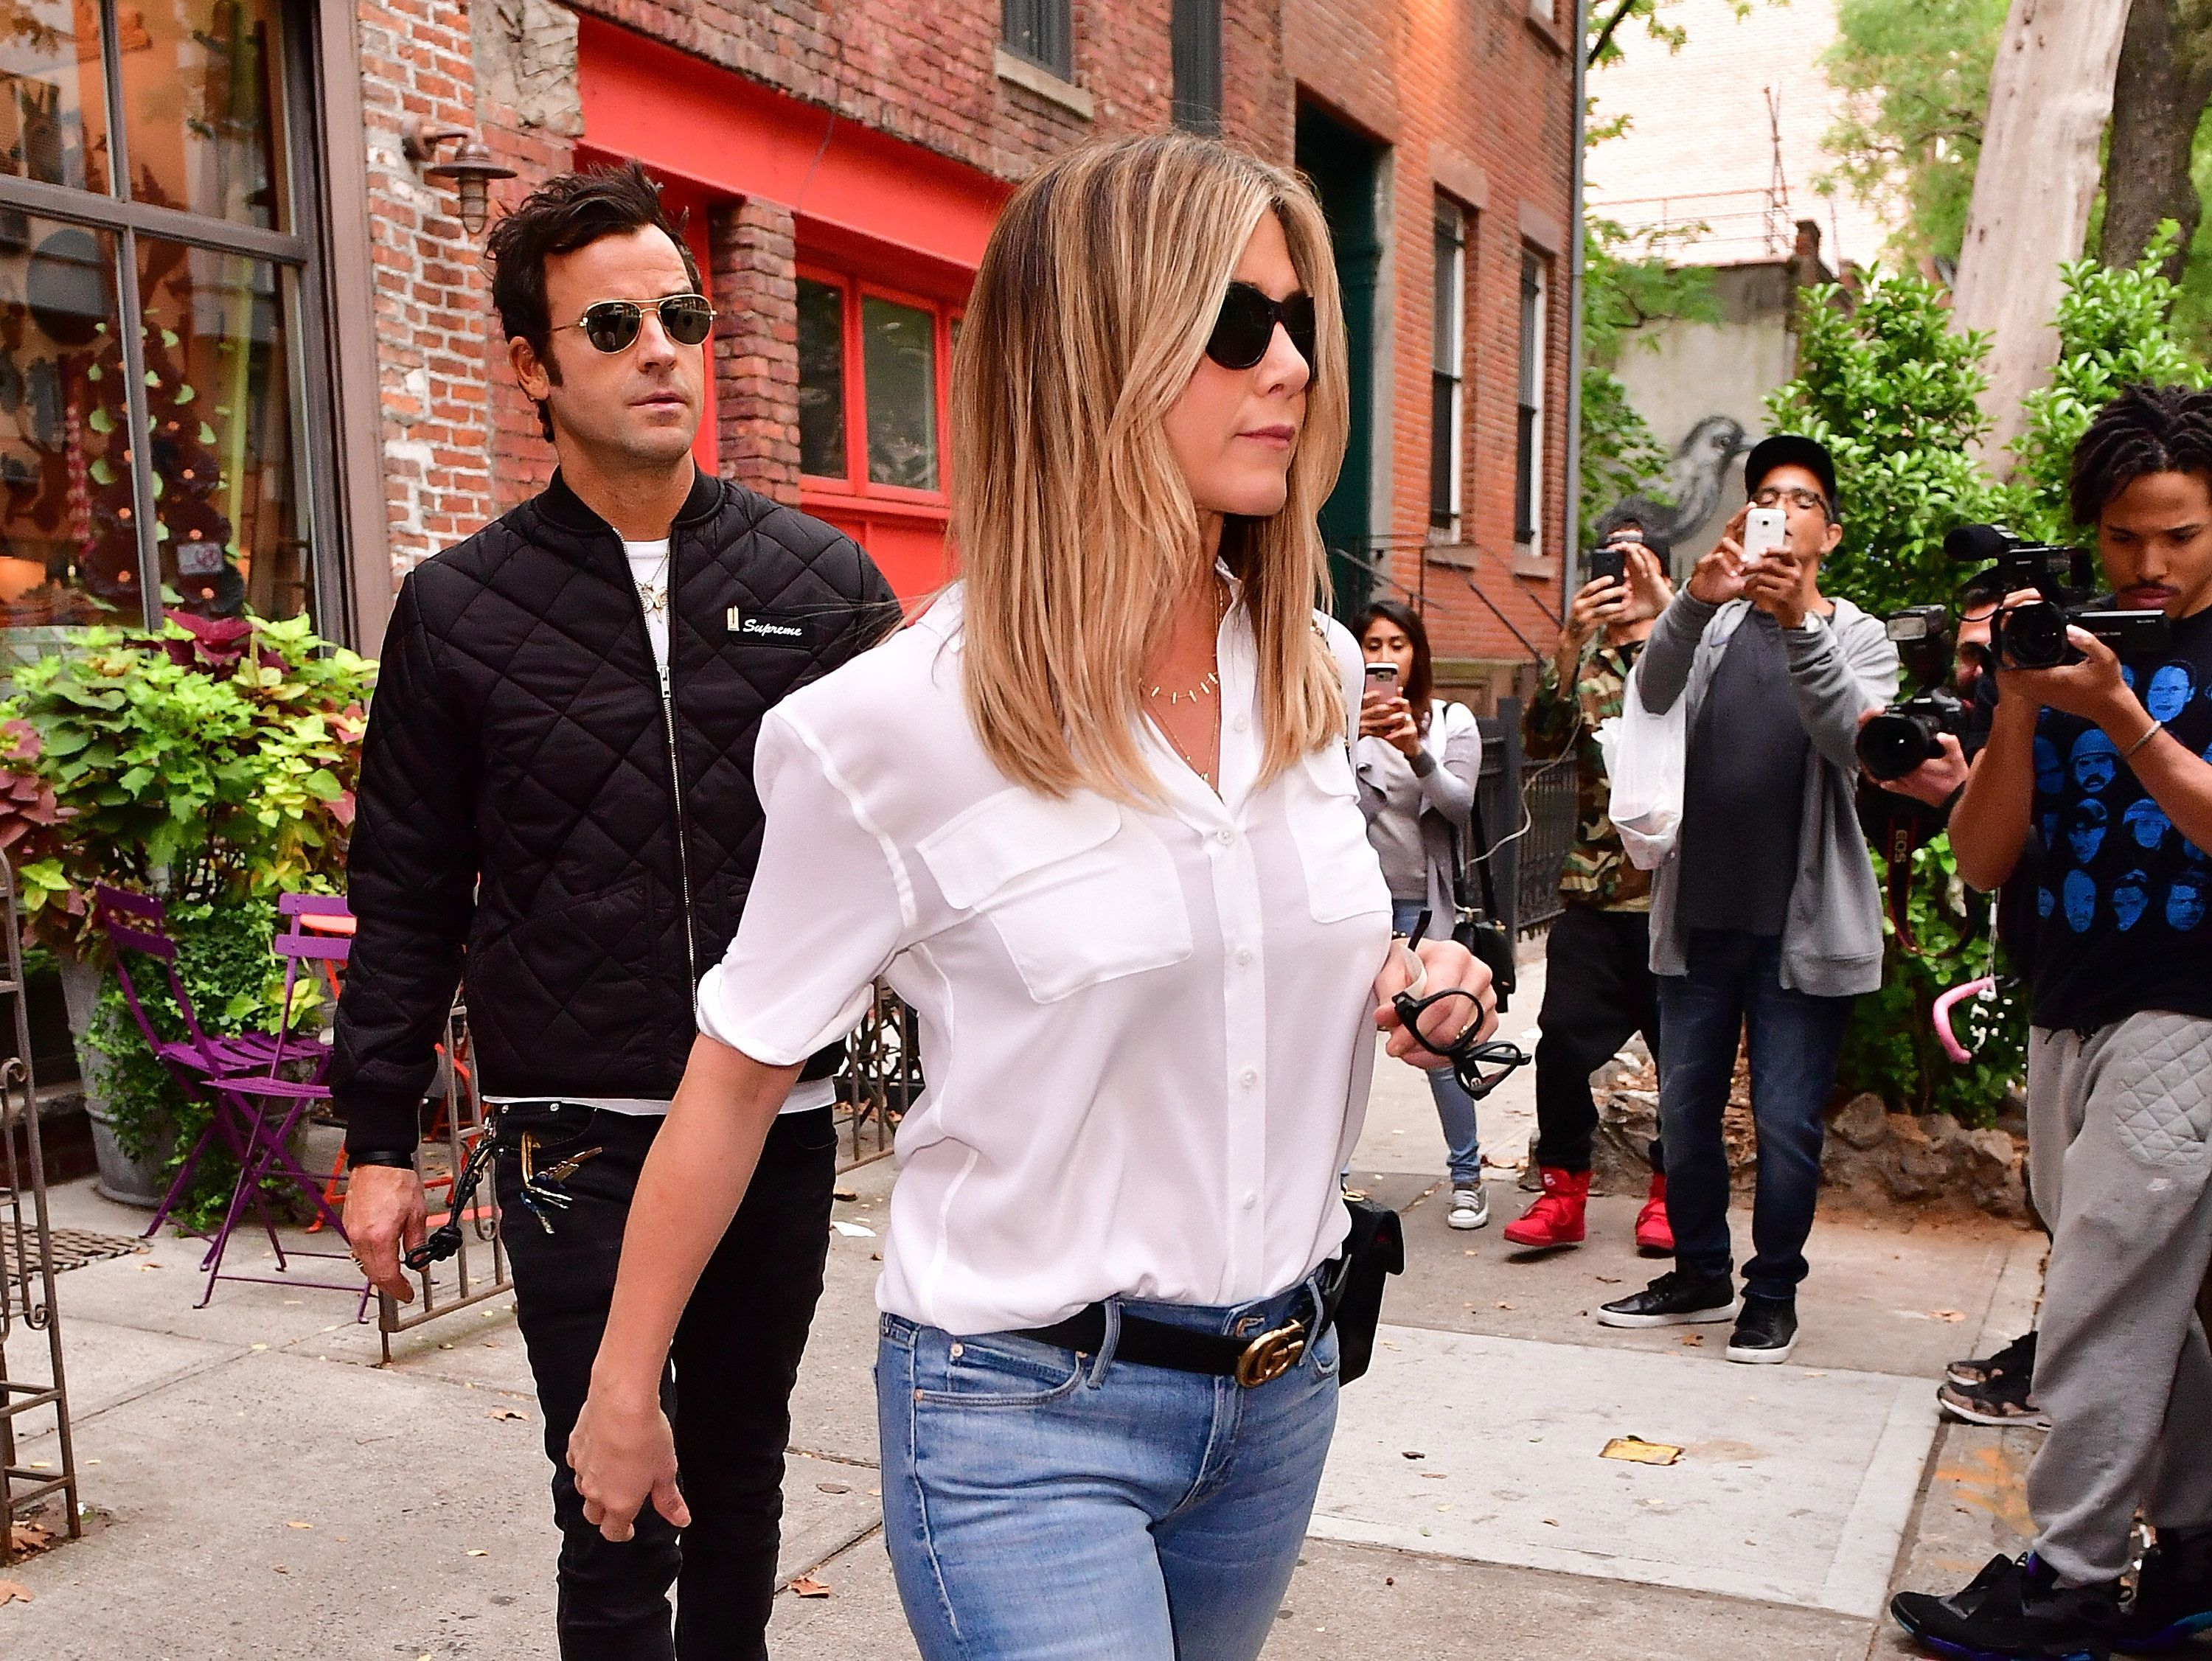 NEW YORK, NY - SEPTEMBER 28:  Justin Theroux and Jennifer Aniston seen on the streets of Manhattan on September 28, 2016 in New York City.  (Photo by James Devaney/GC Images)